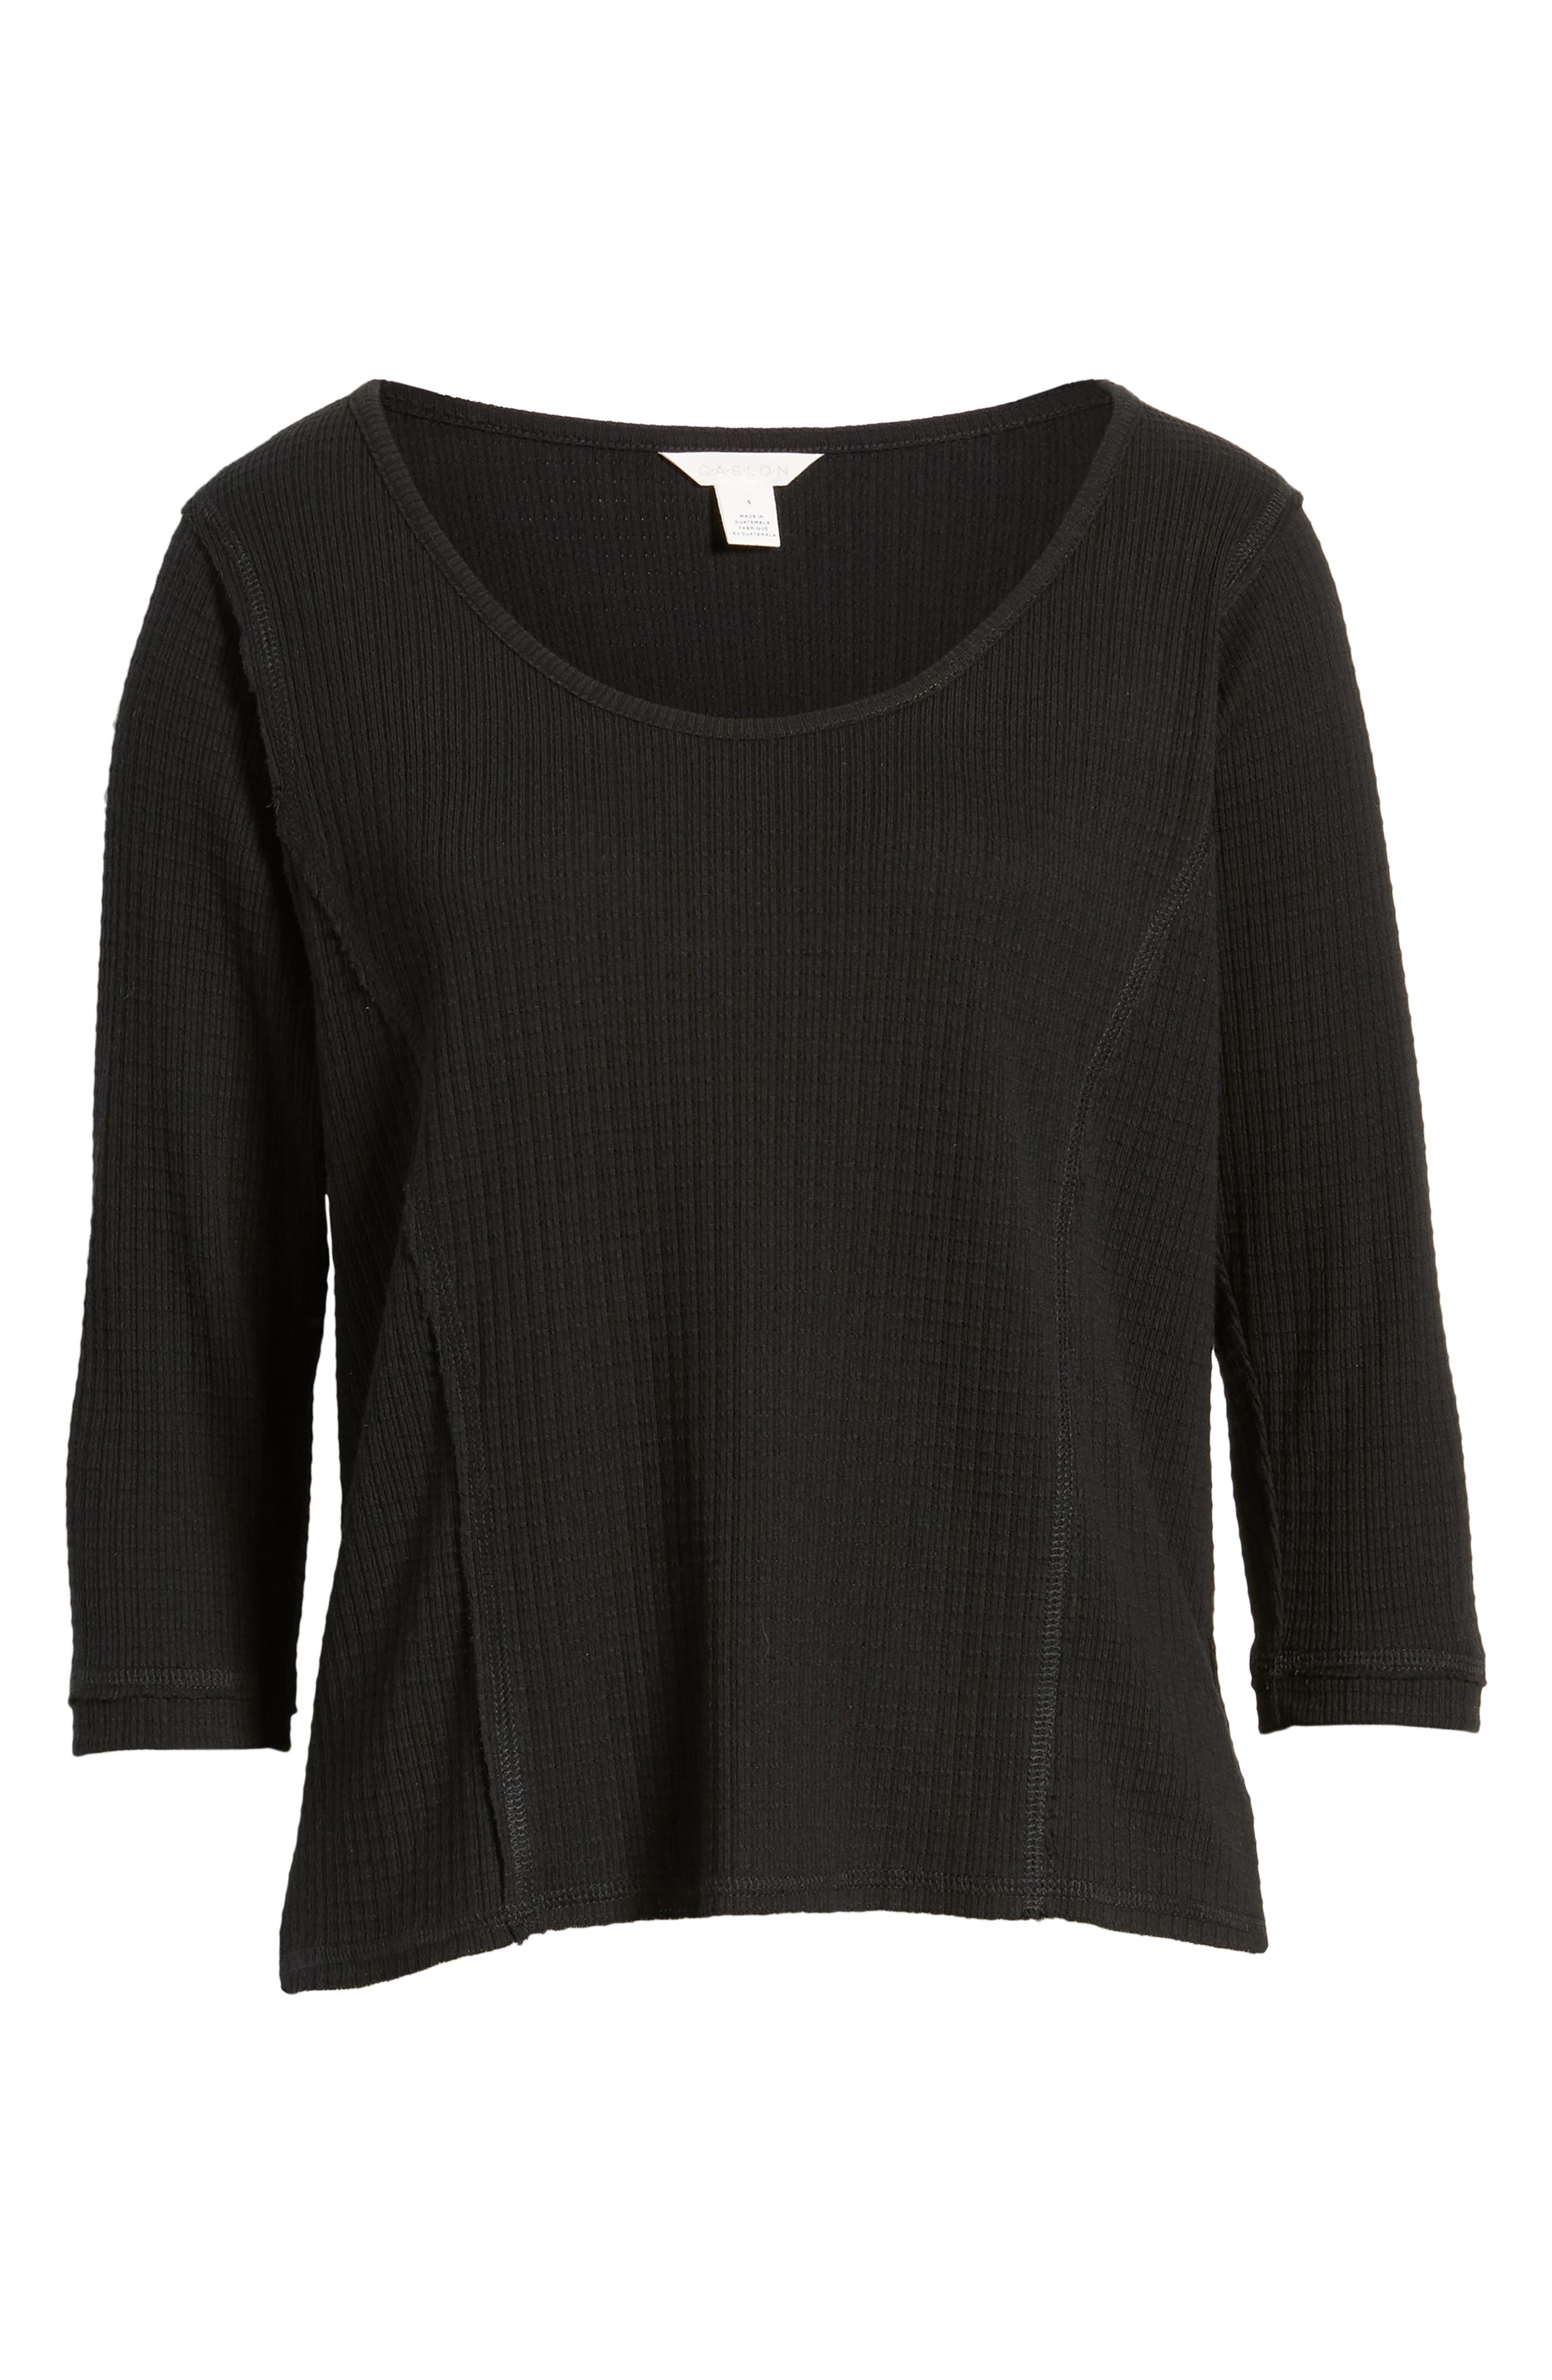 CASLON<SUP>®</SUP>, Off-Duty Waffle Knit Tee, Alternate thumbnail 6, color, BLACK